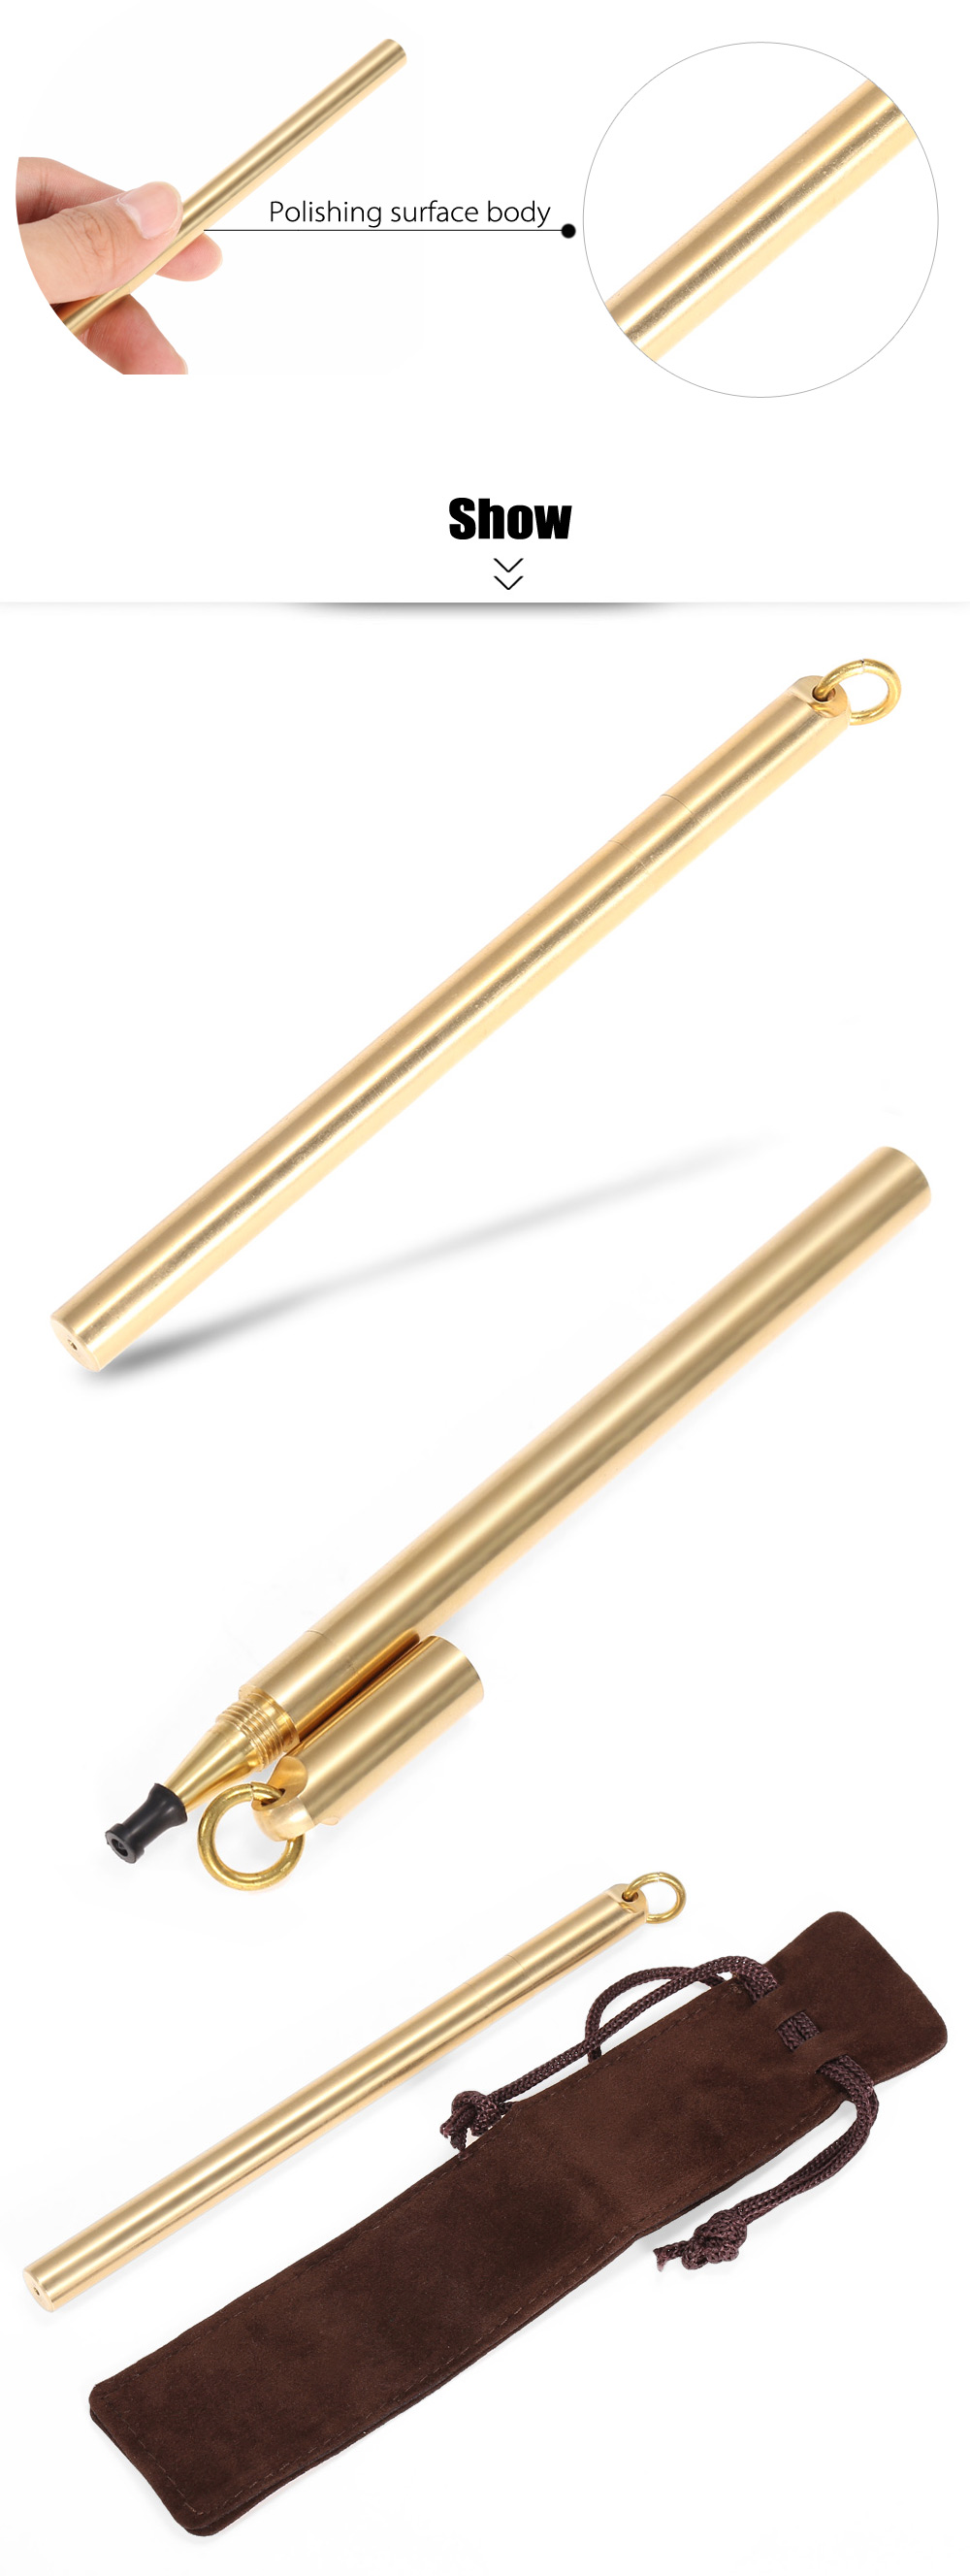 FURA Polishing Surface Brass Tactical Pen with Ring